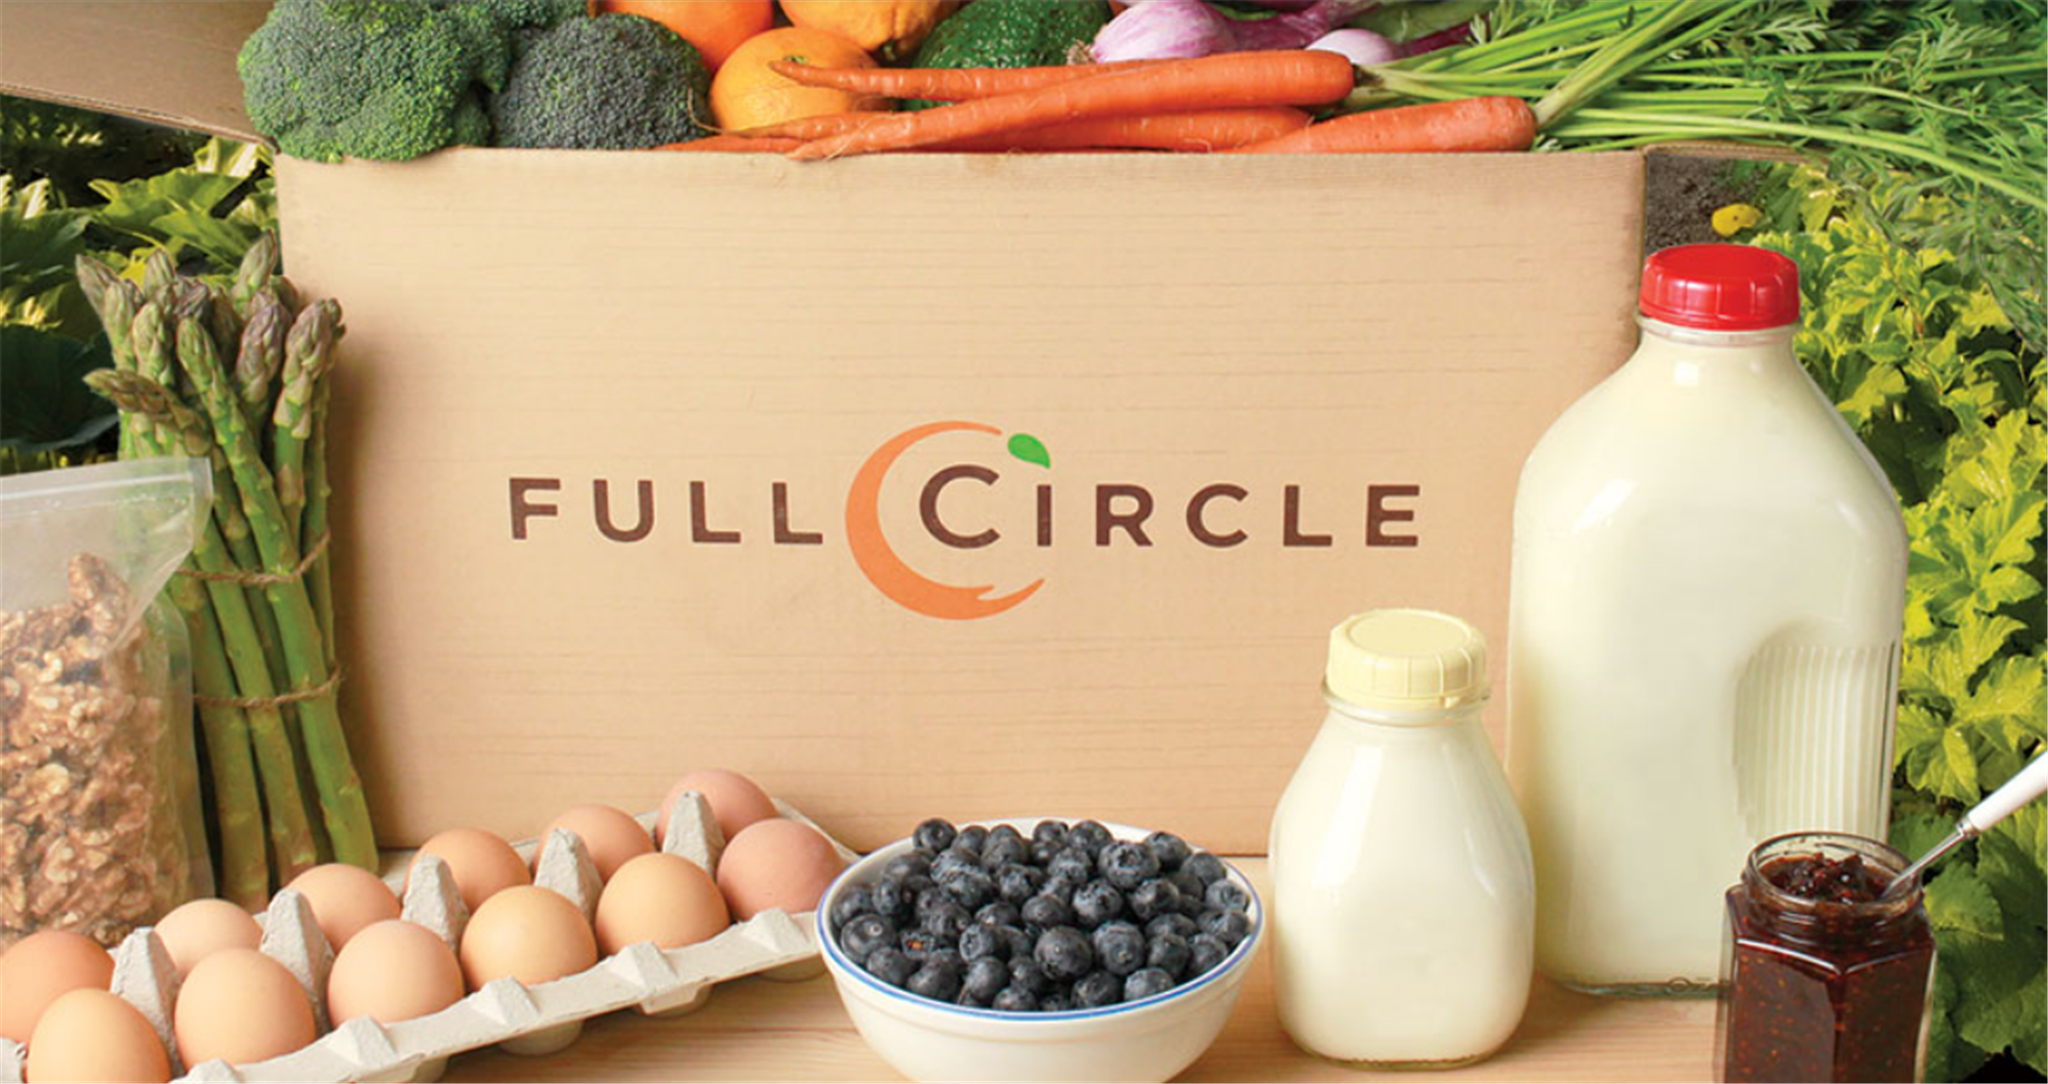 Full Circle Farm Box Delivery Service – Organic Food Delivered Right To Your Door!